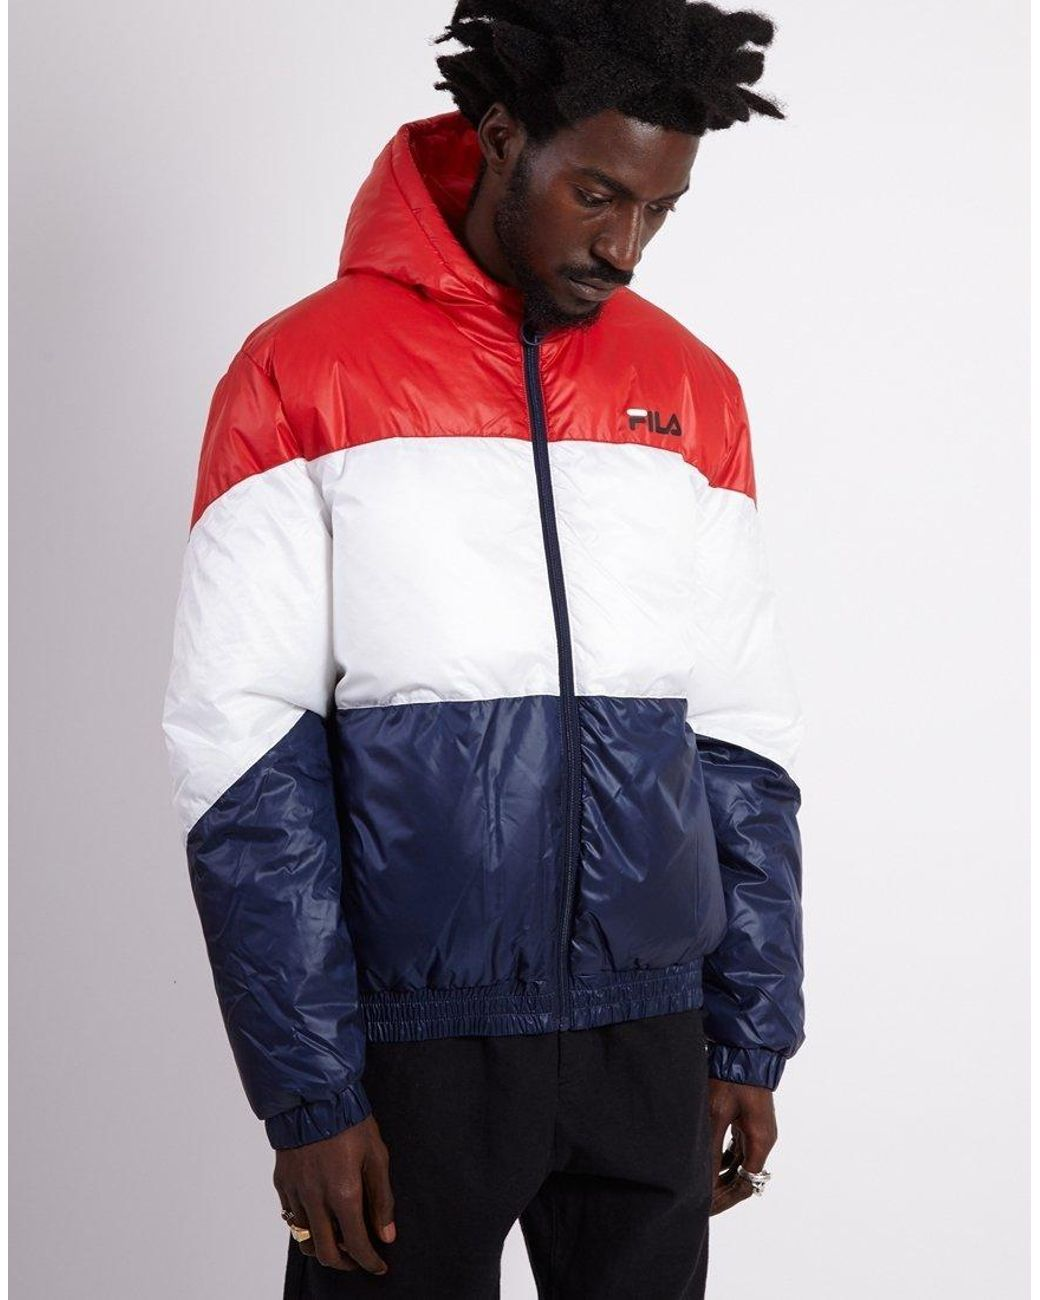 8e5cdf10dc63 Fila Reyton Hooded Jacket in Red for Men - Save 54% - Lyst